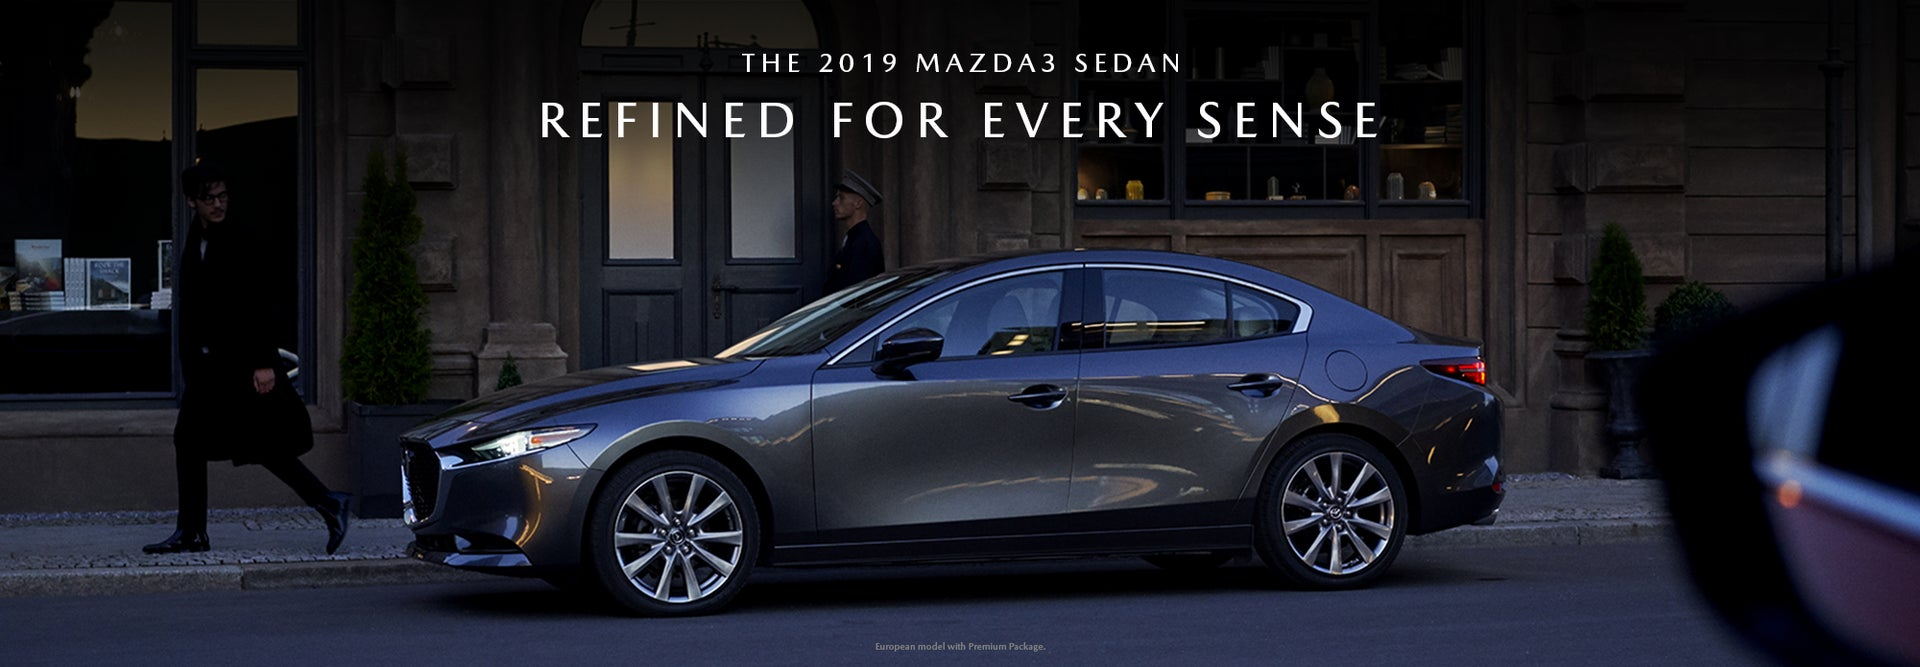 Ingram Park Mazda >> Mazda Dealer in San Antonio | Used Cars, trucks SUVs | Ingram Park Mazda